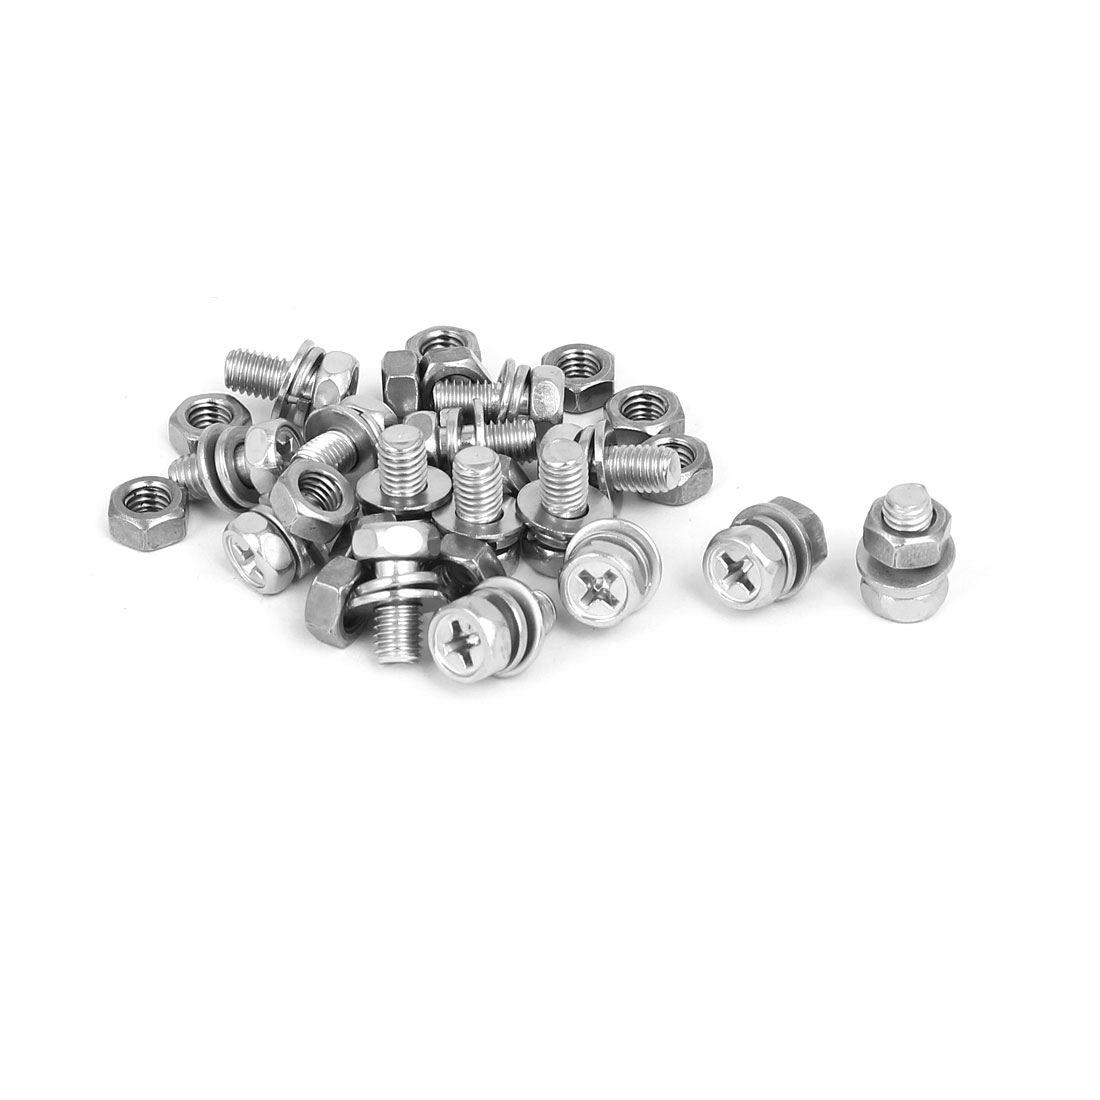 M5 x 10mm 304 Stainless Steel Phillips Hex Head Bolts Nuts w Washers 15 Sets